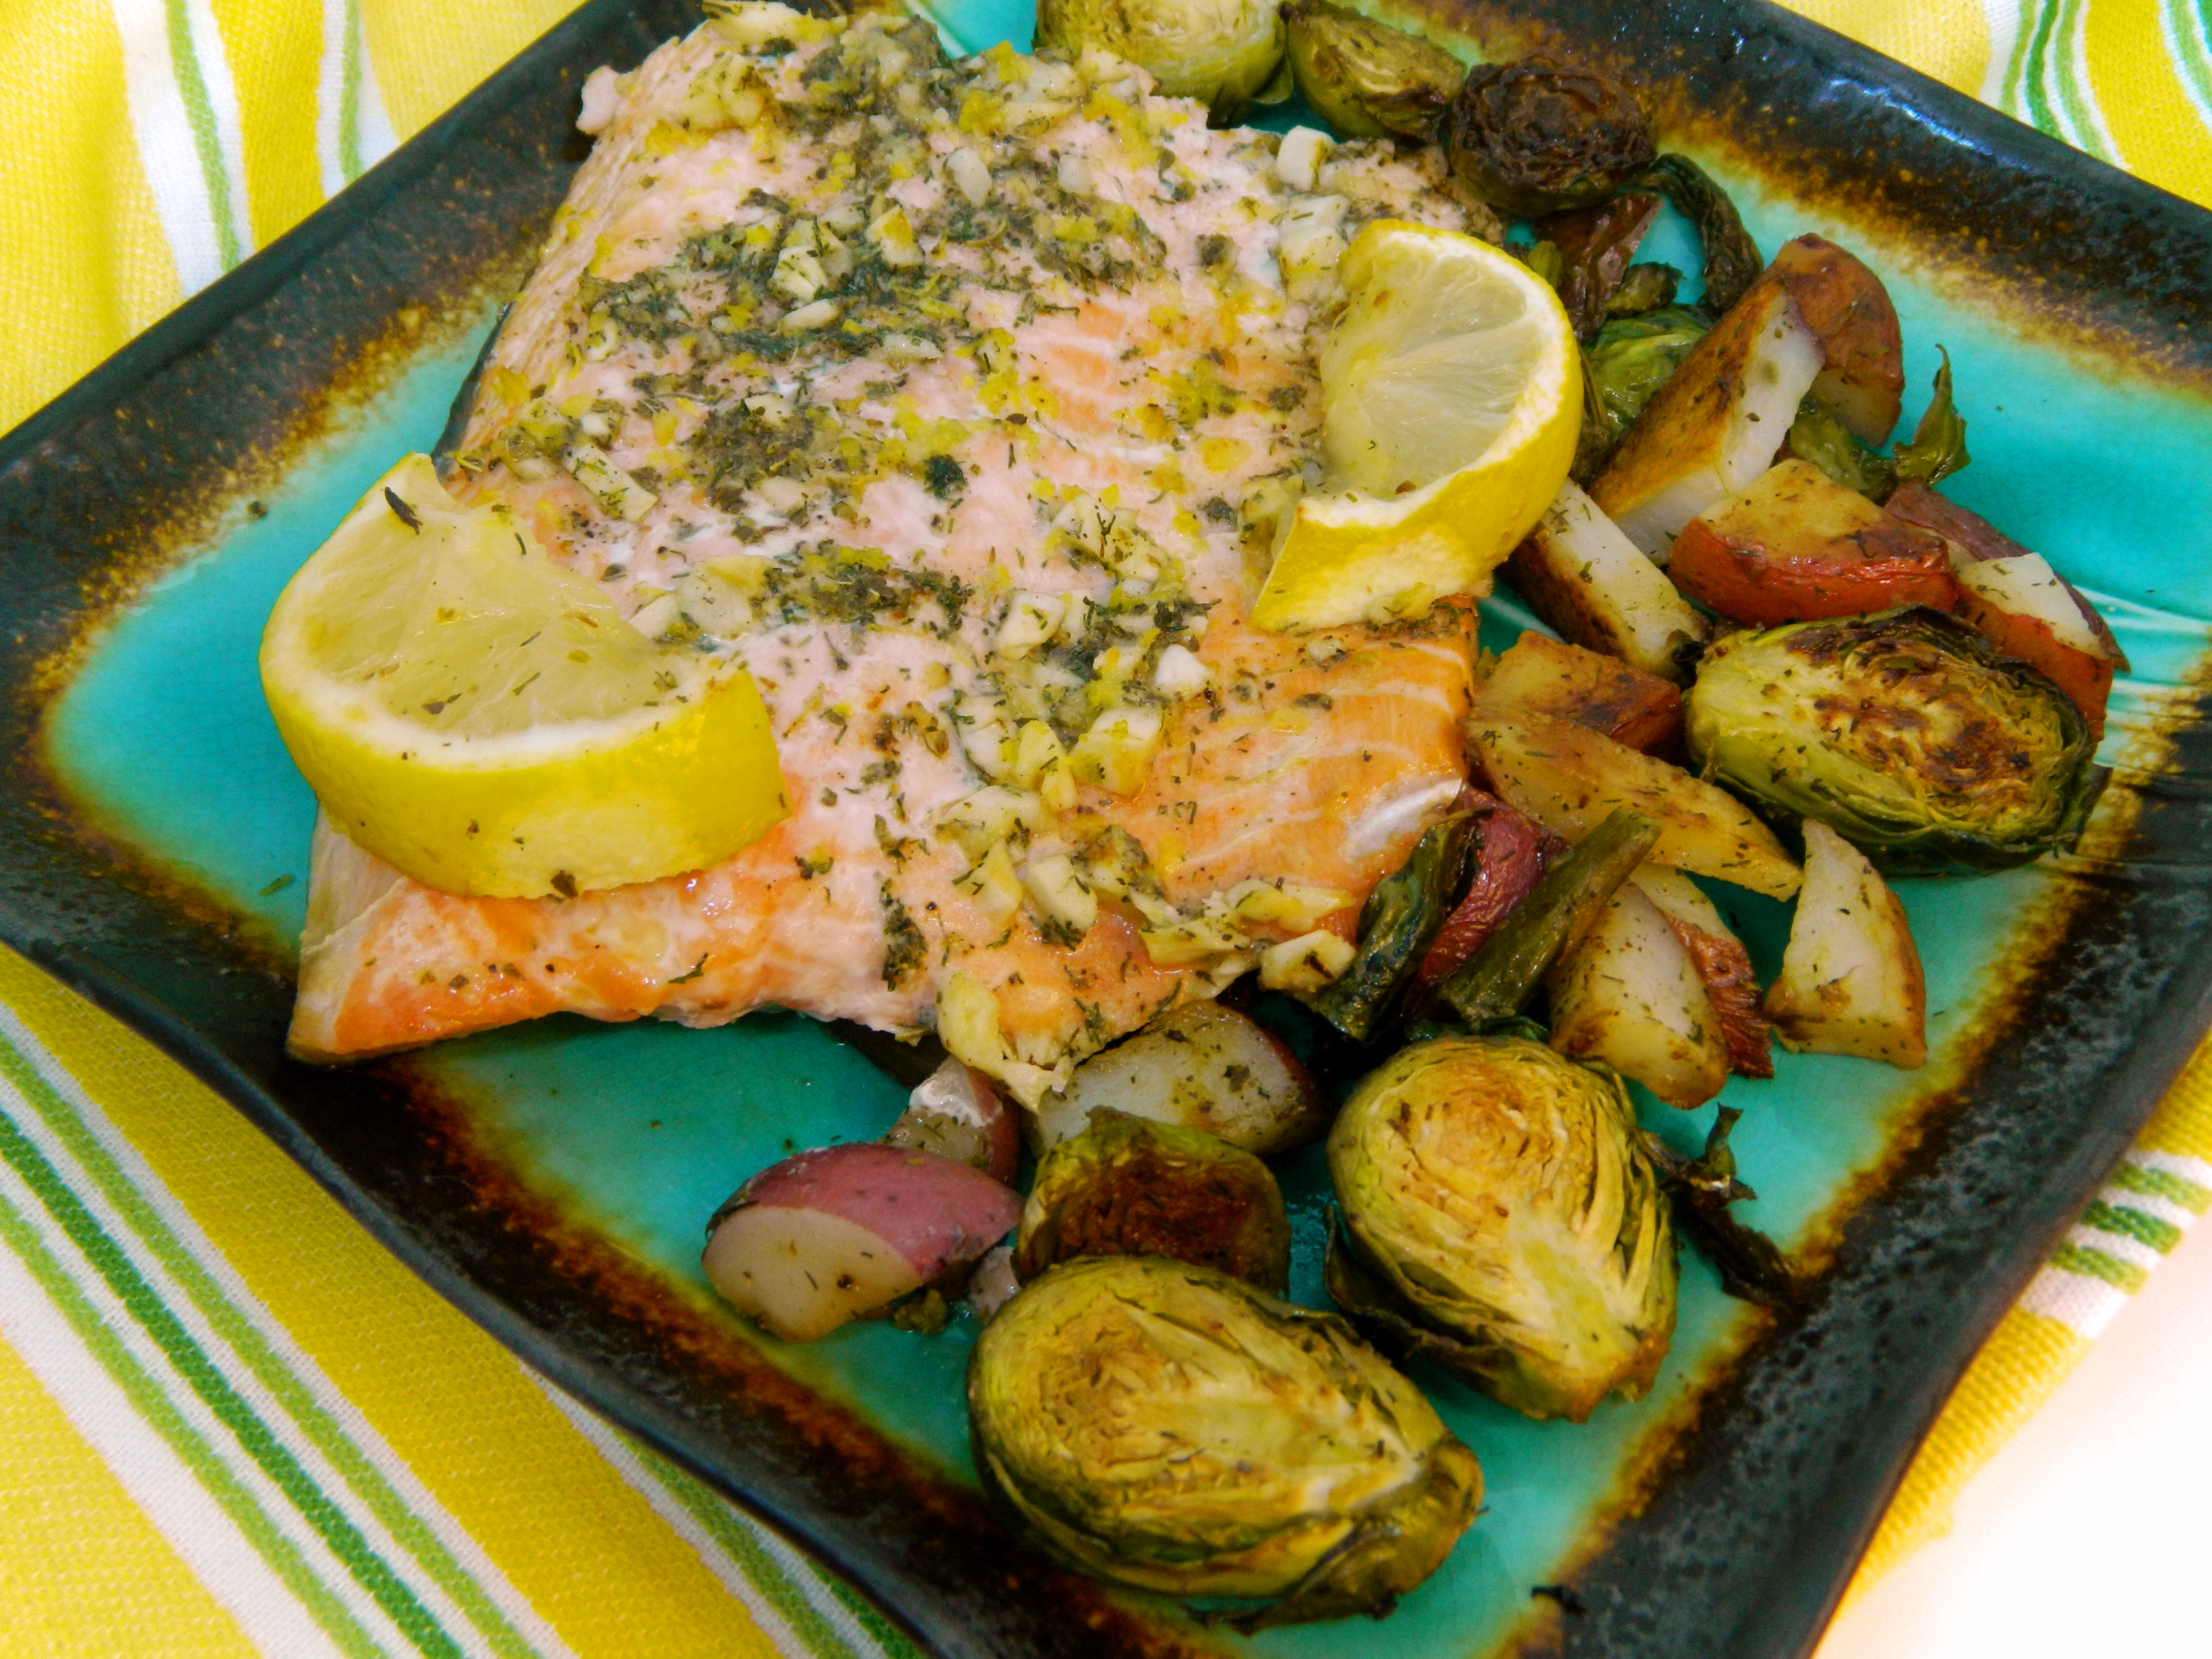 salmon on a green plate with brussel sprouts